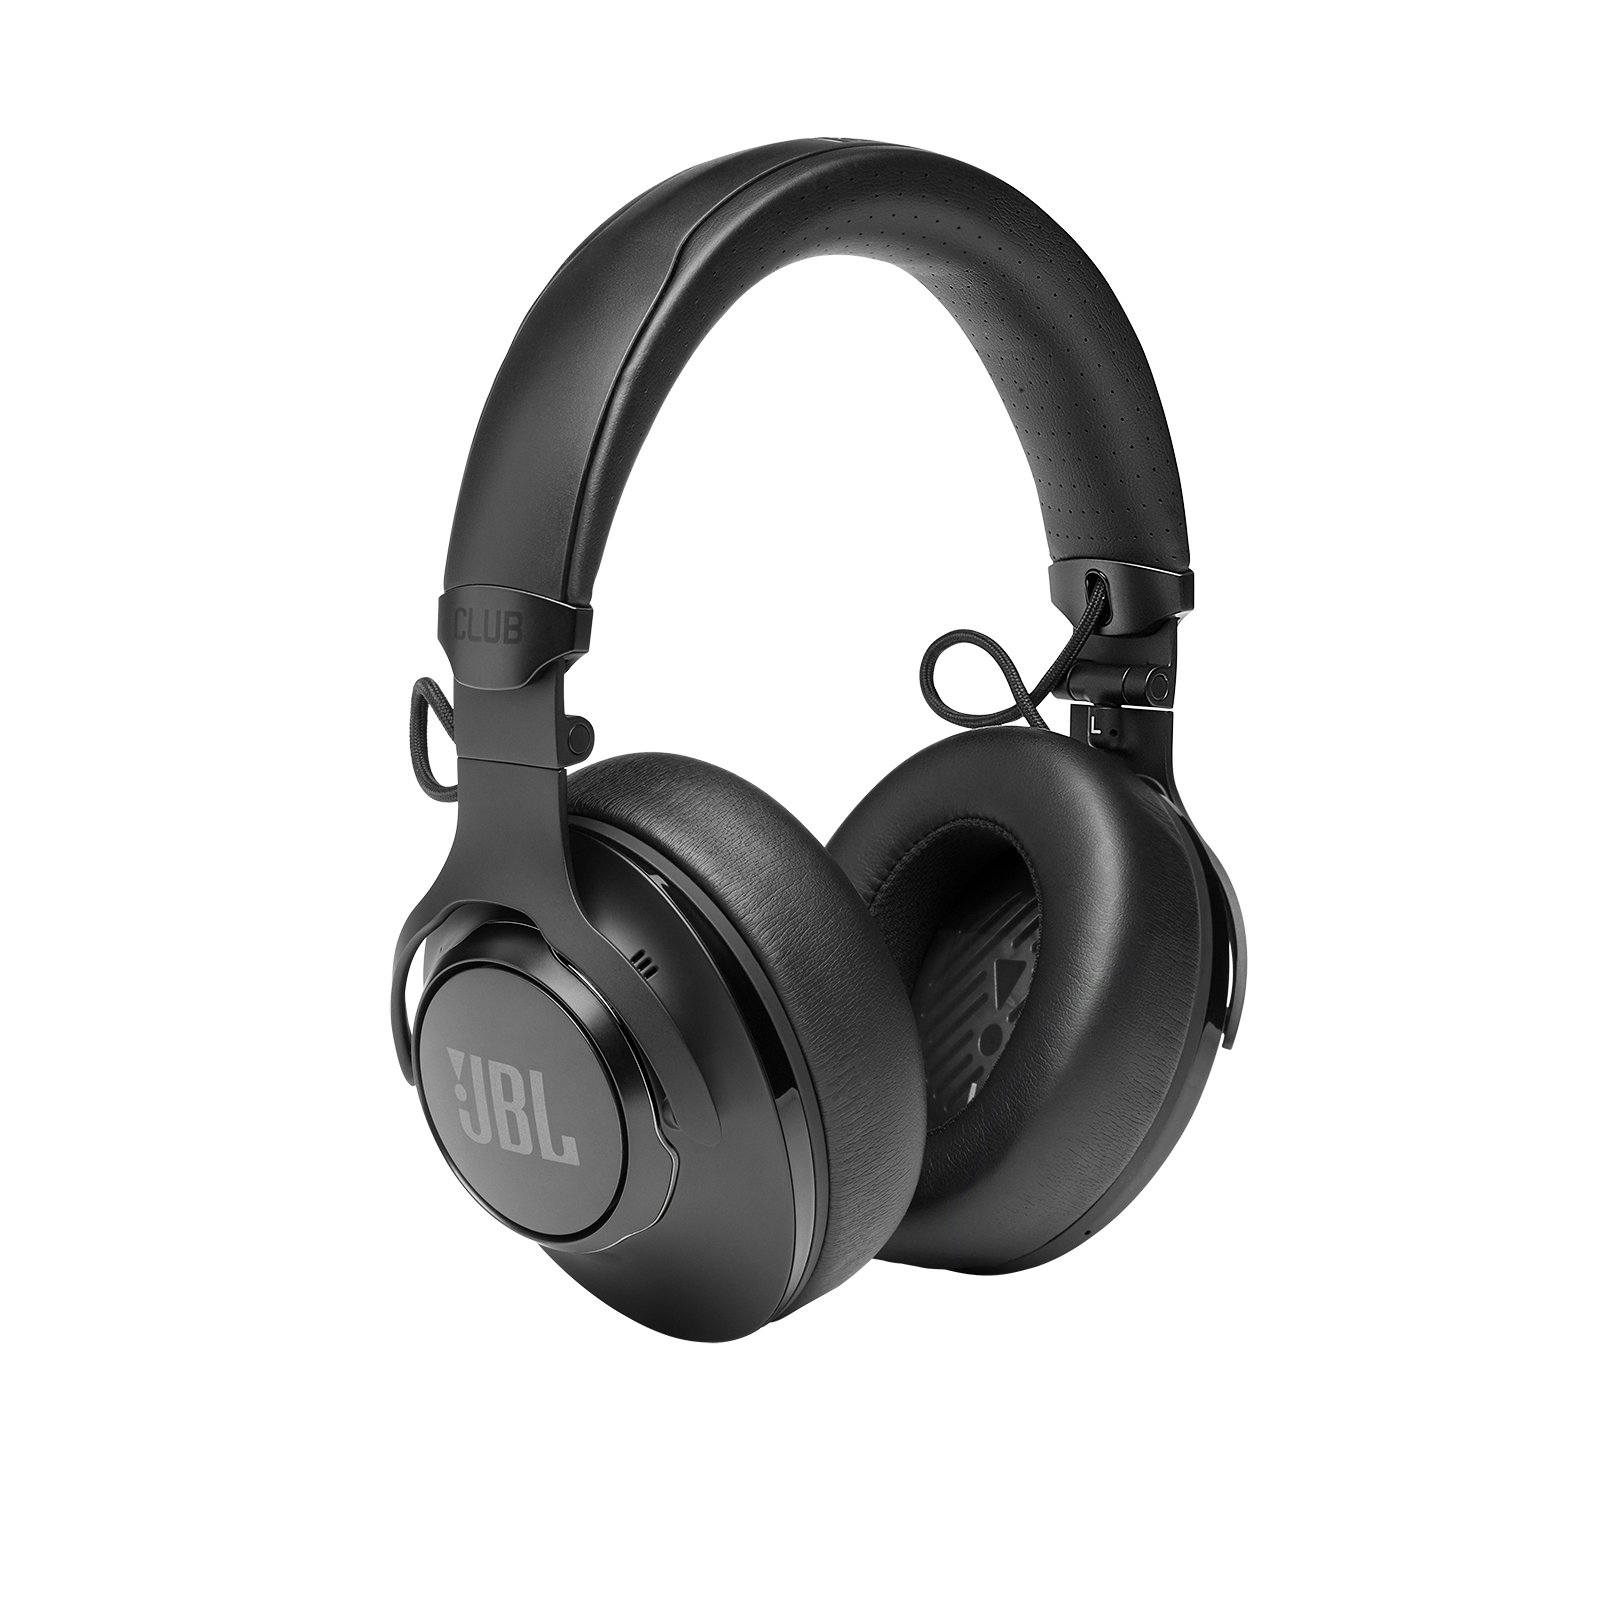 JBL CLUB 950NC - Black - Wireless over-ear noise cancelling headphones - Detailshot 2